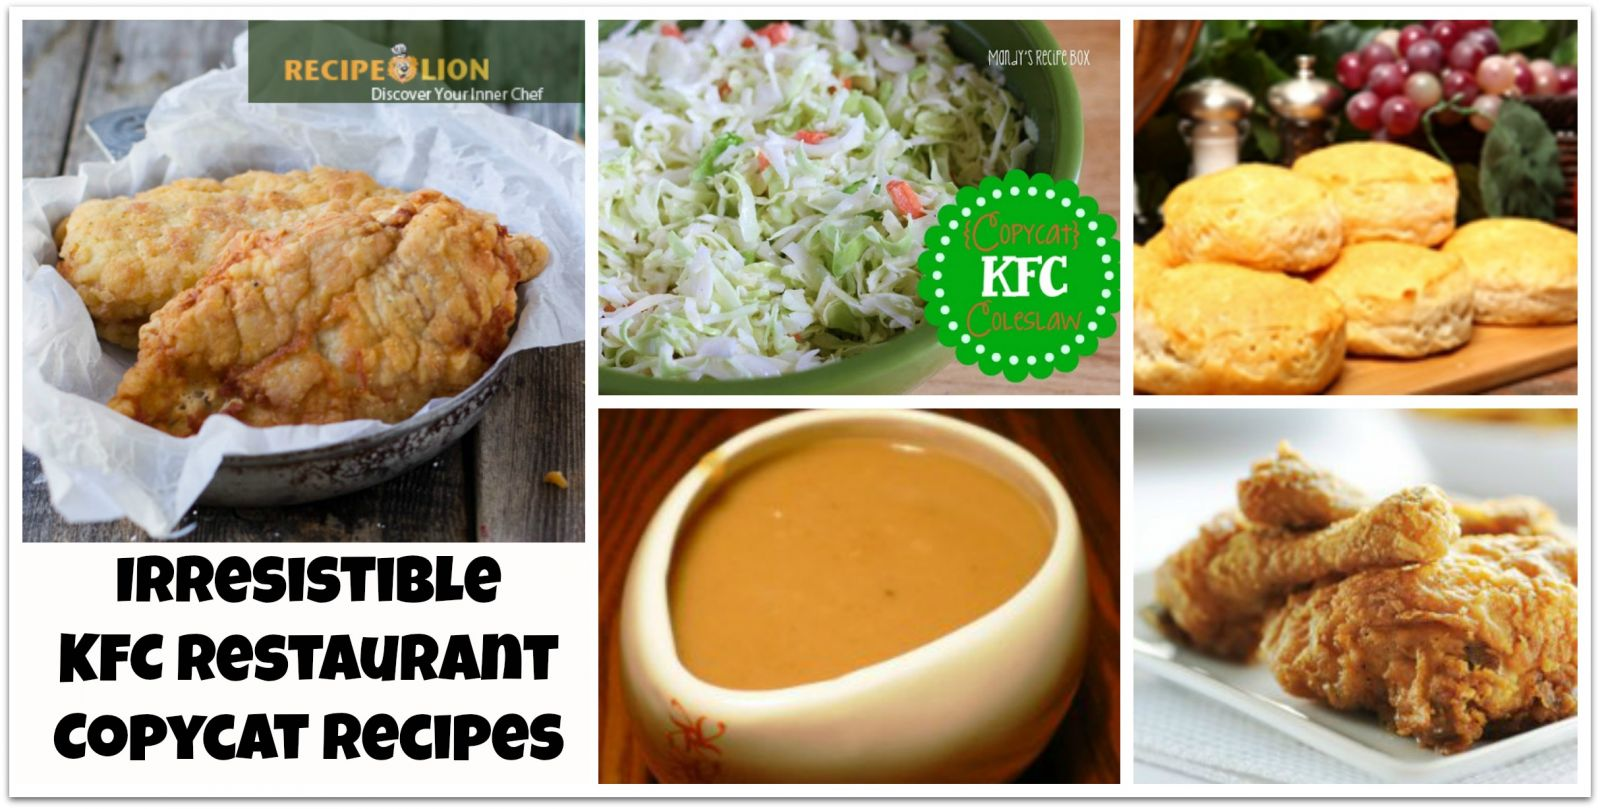 KFC Copycat Recipes